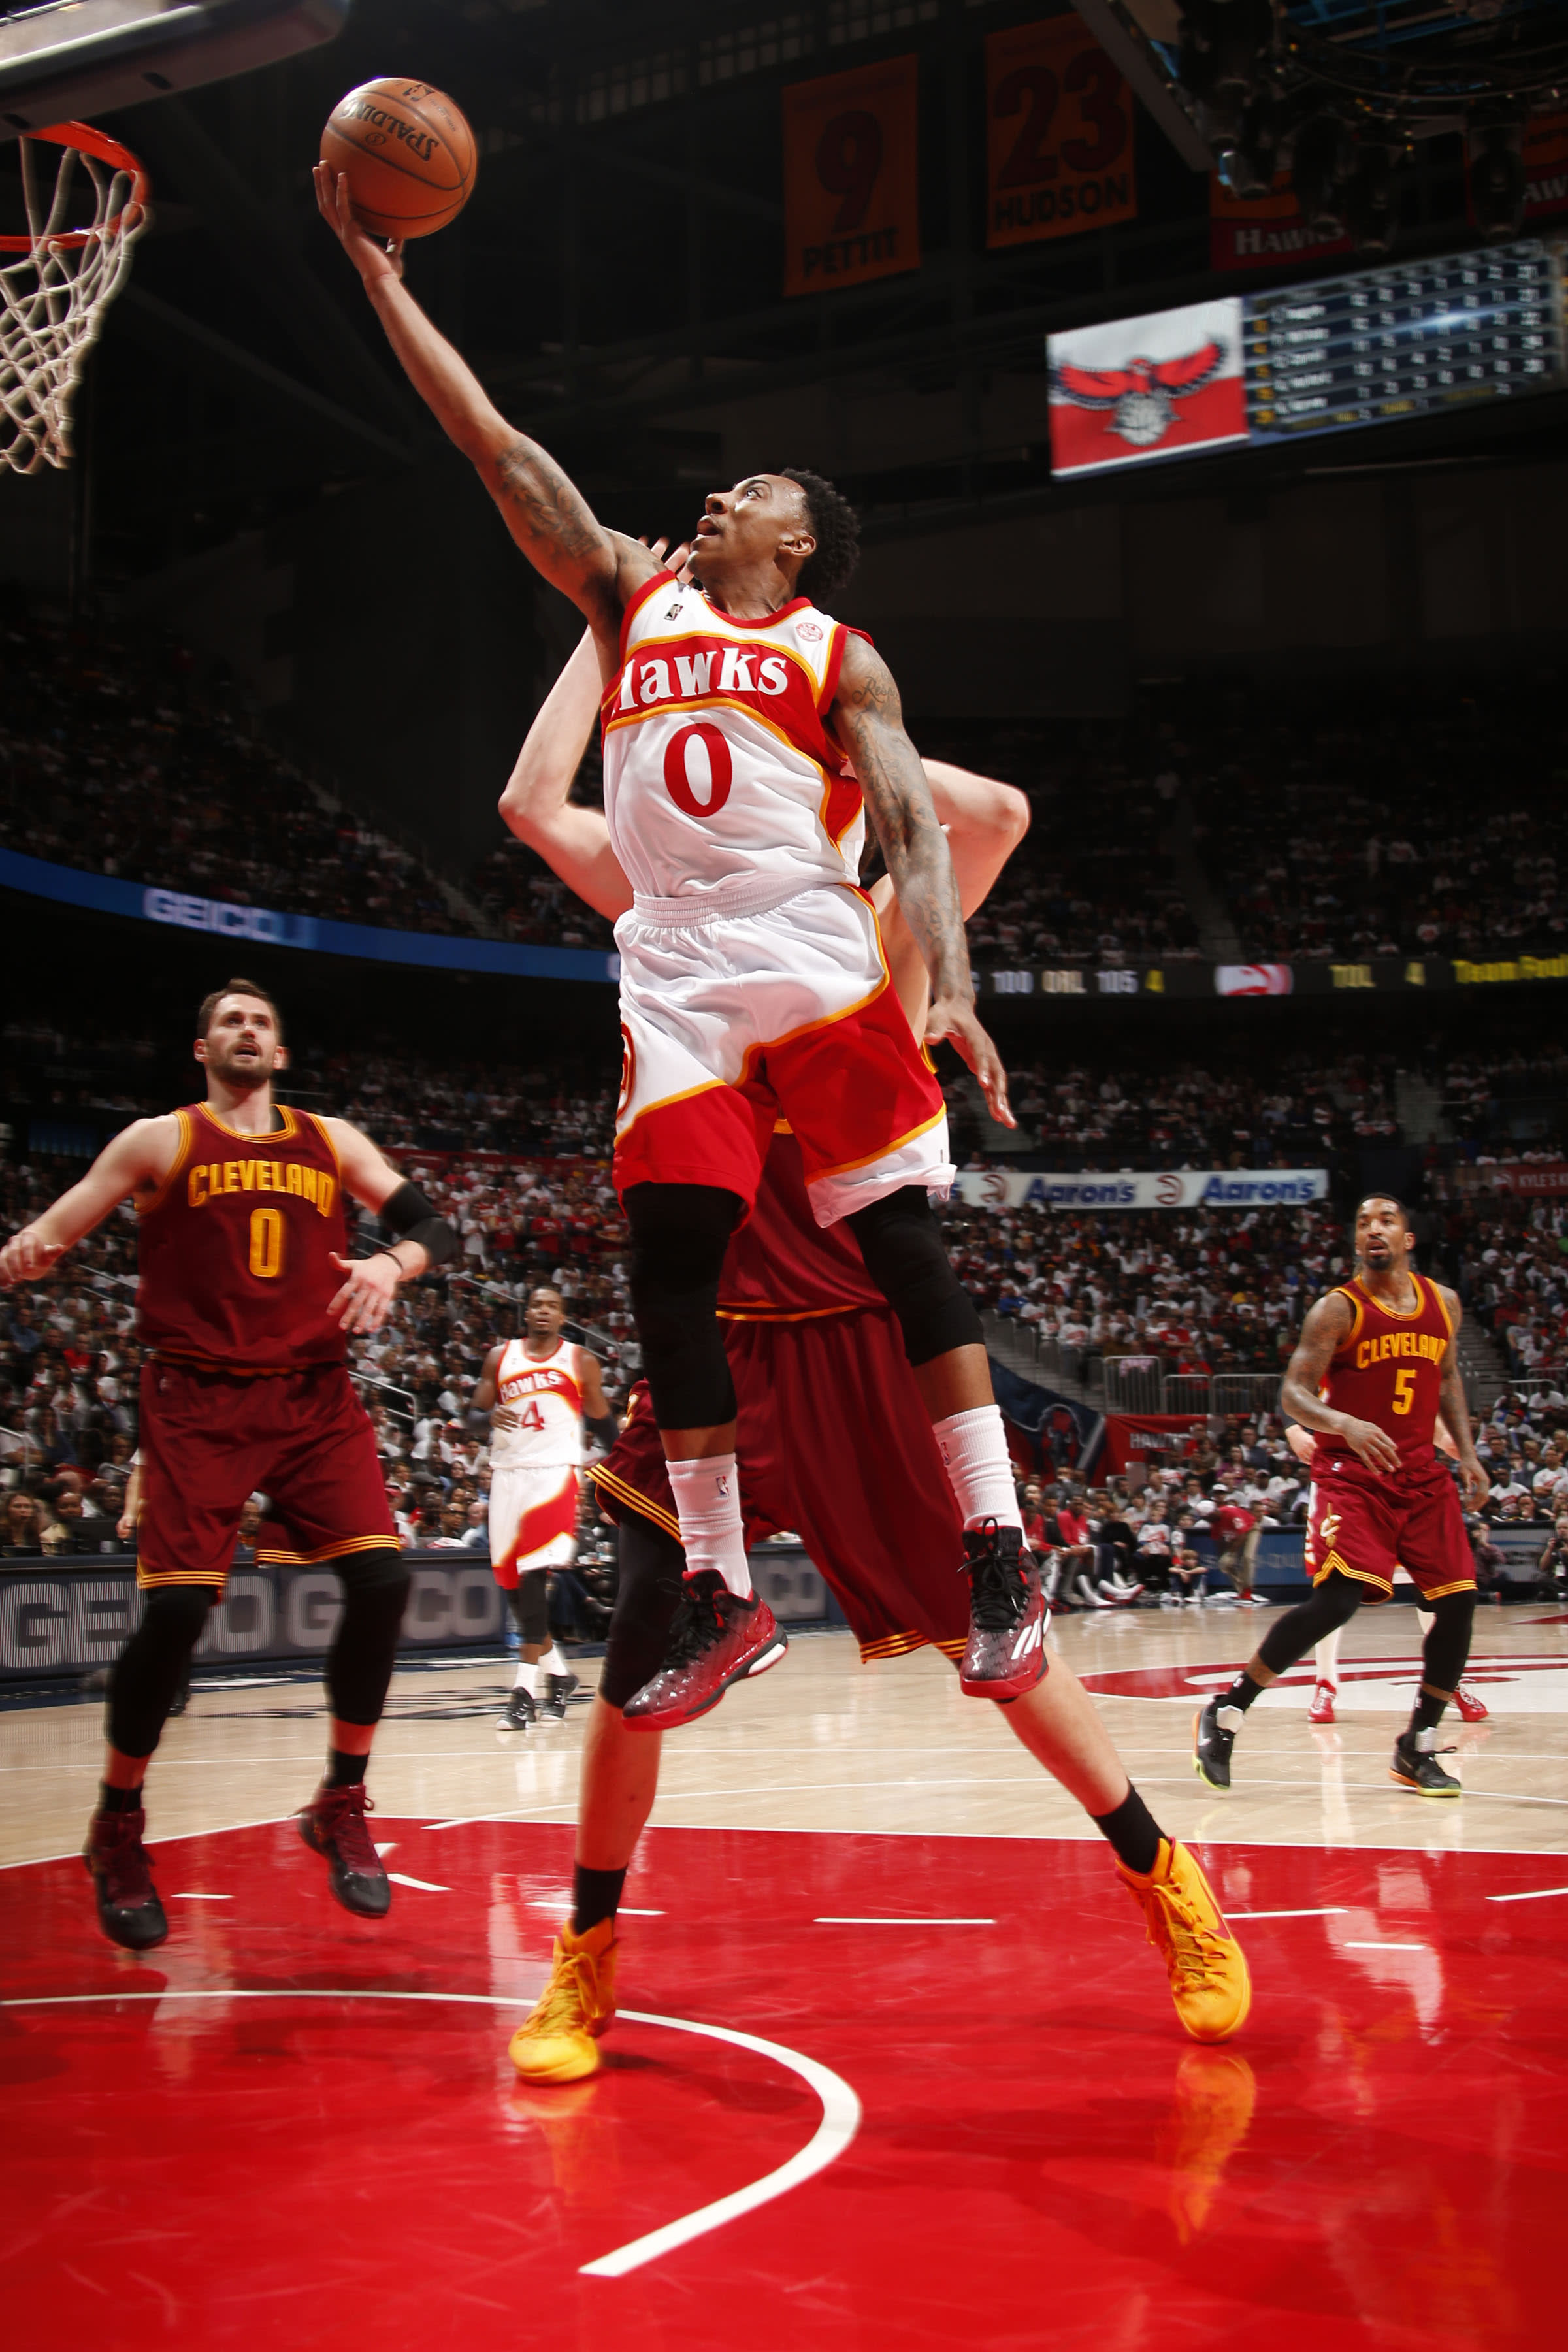 On Nique's night, Hawks pull away in 4th to beat Cavs 106-97